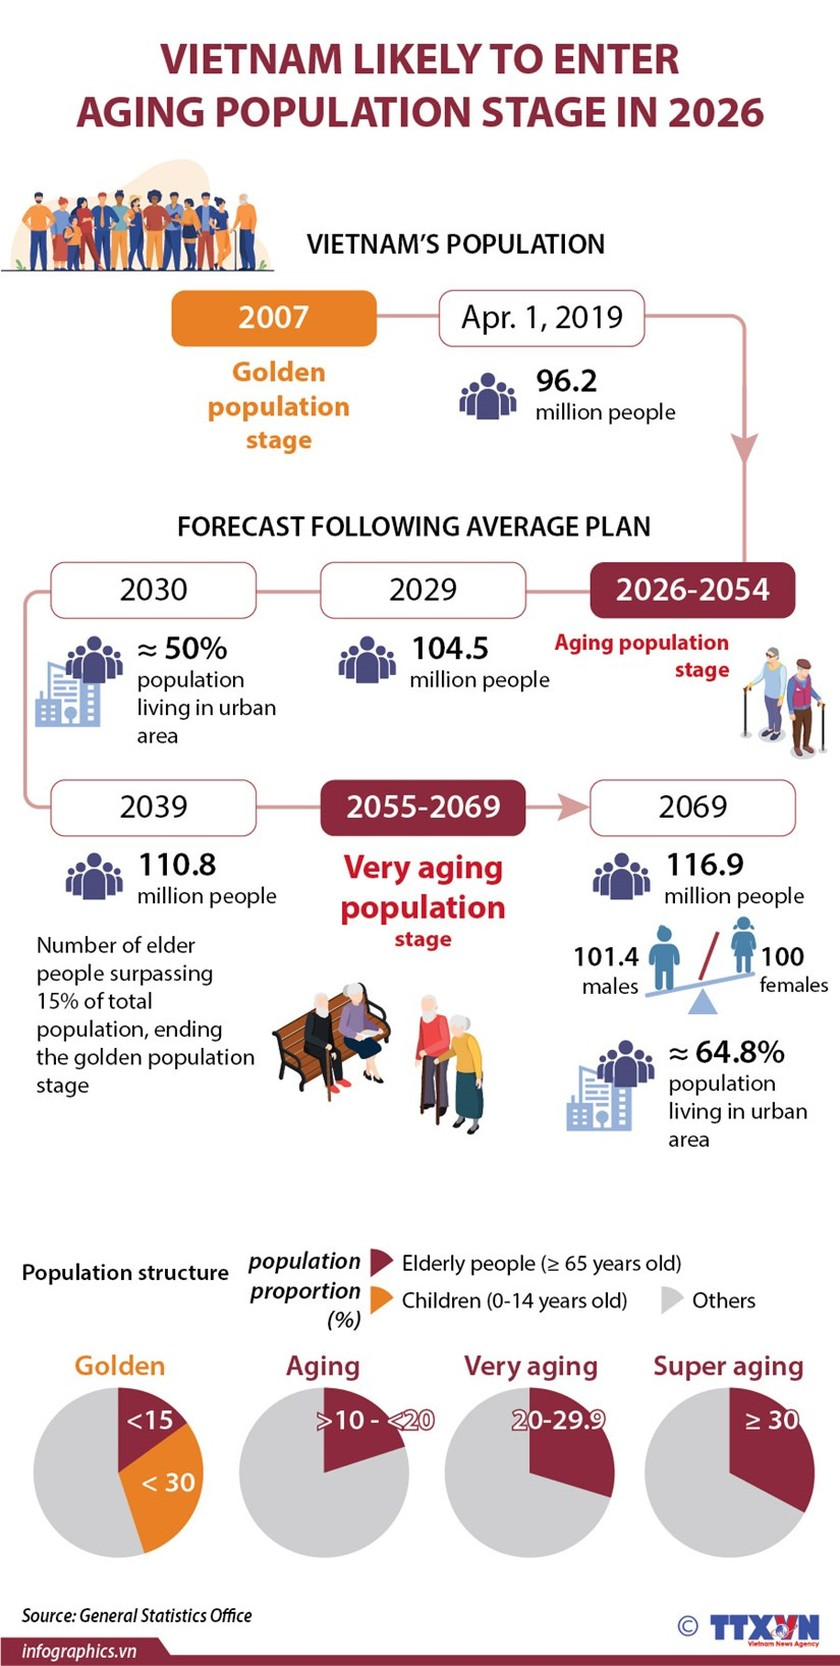 Vietnam to enter aging population stage in 2026 ảnh 1